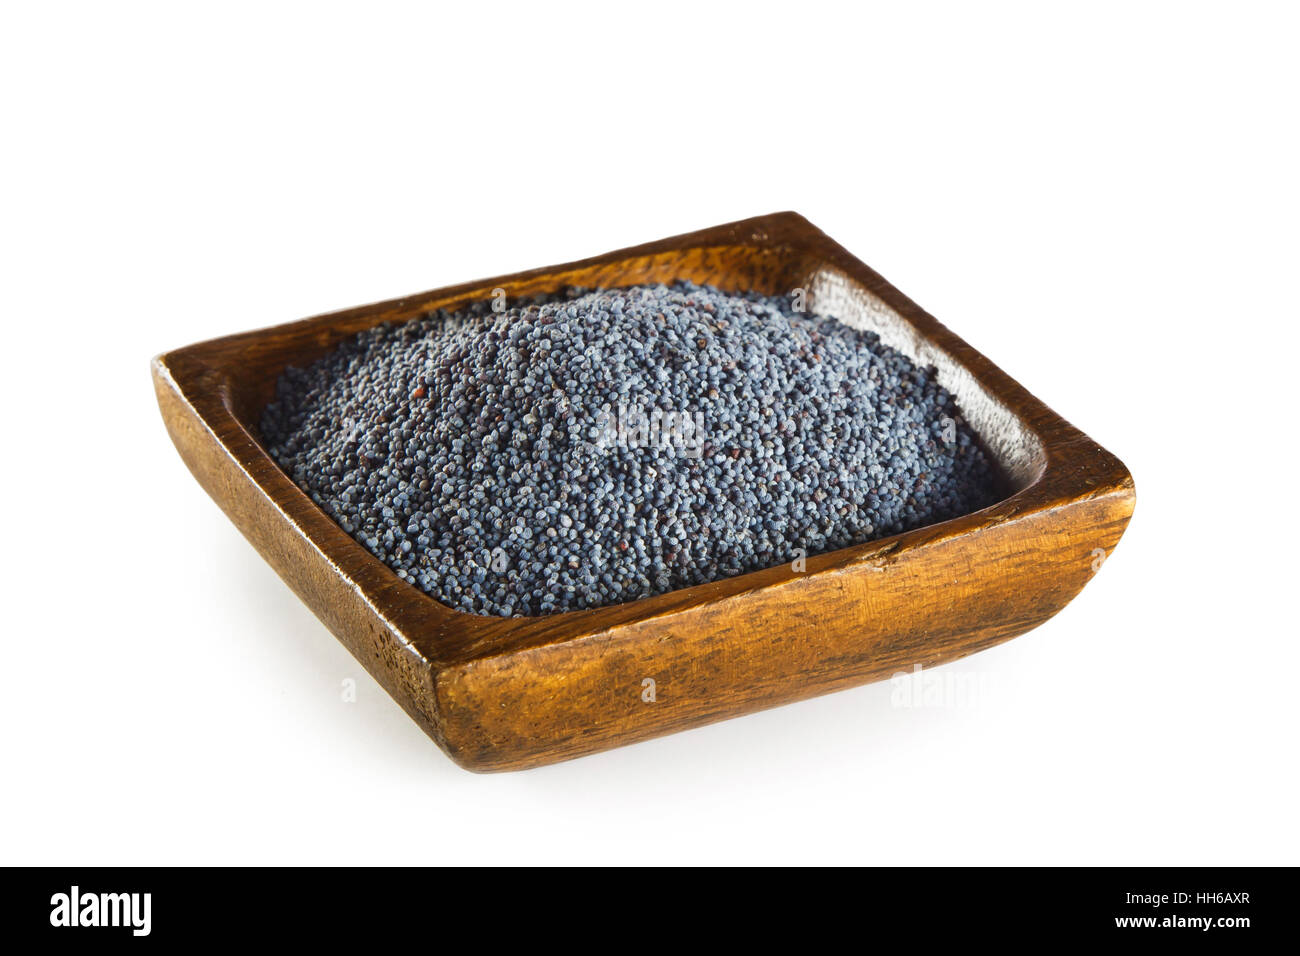 Blue poppy seeds in wooden bowl isolated on white background - Stock Image